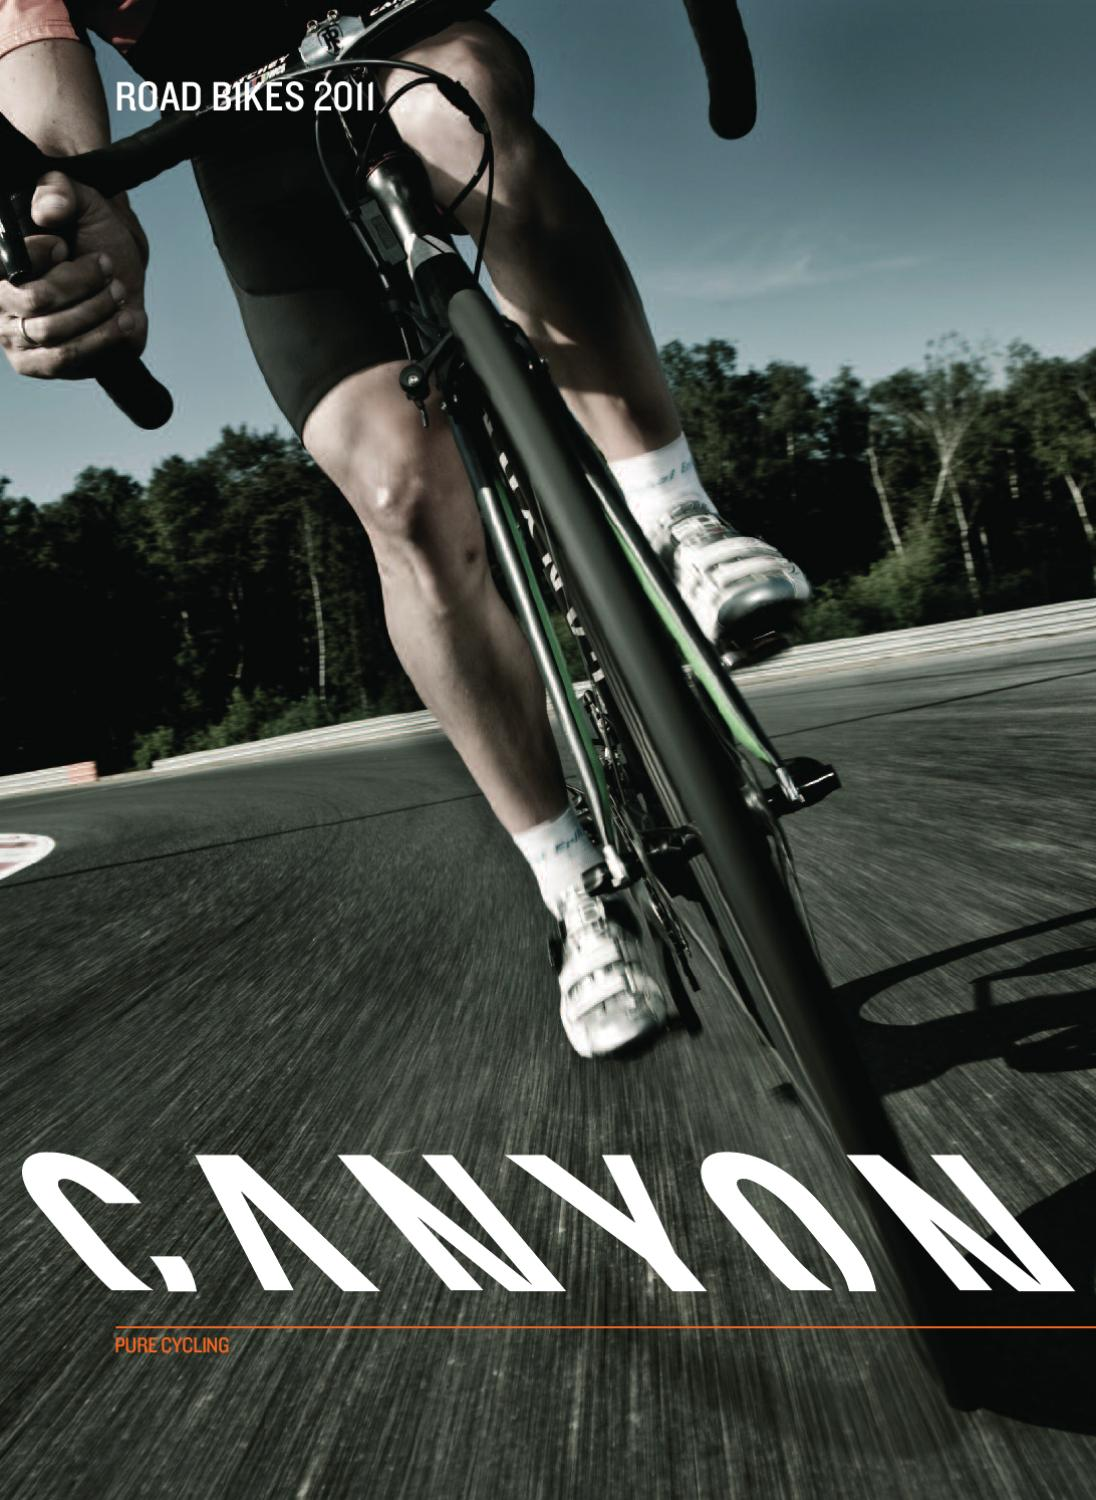 canyon roadbikes 2011 by canyon bicycles gmbh issuu. Black Bedroom Furniture Sets. Home Design Ideas